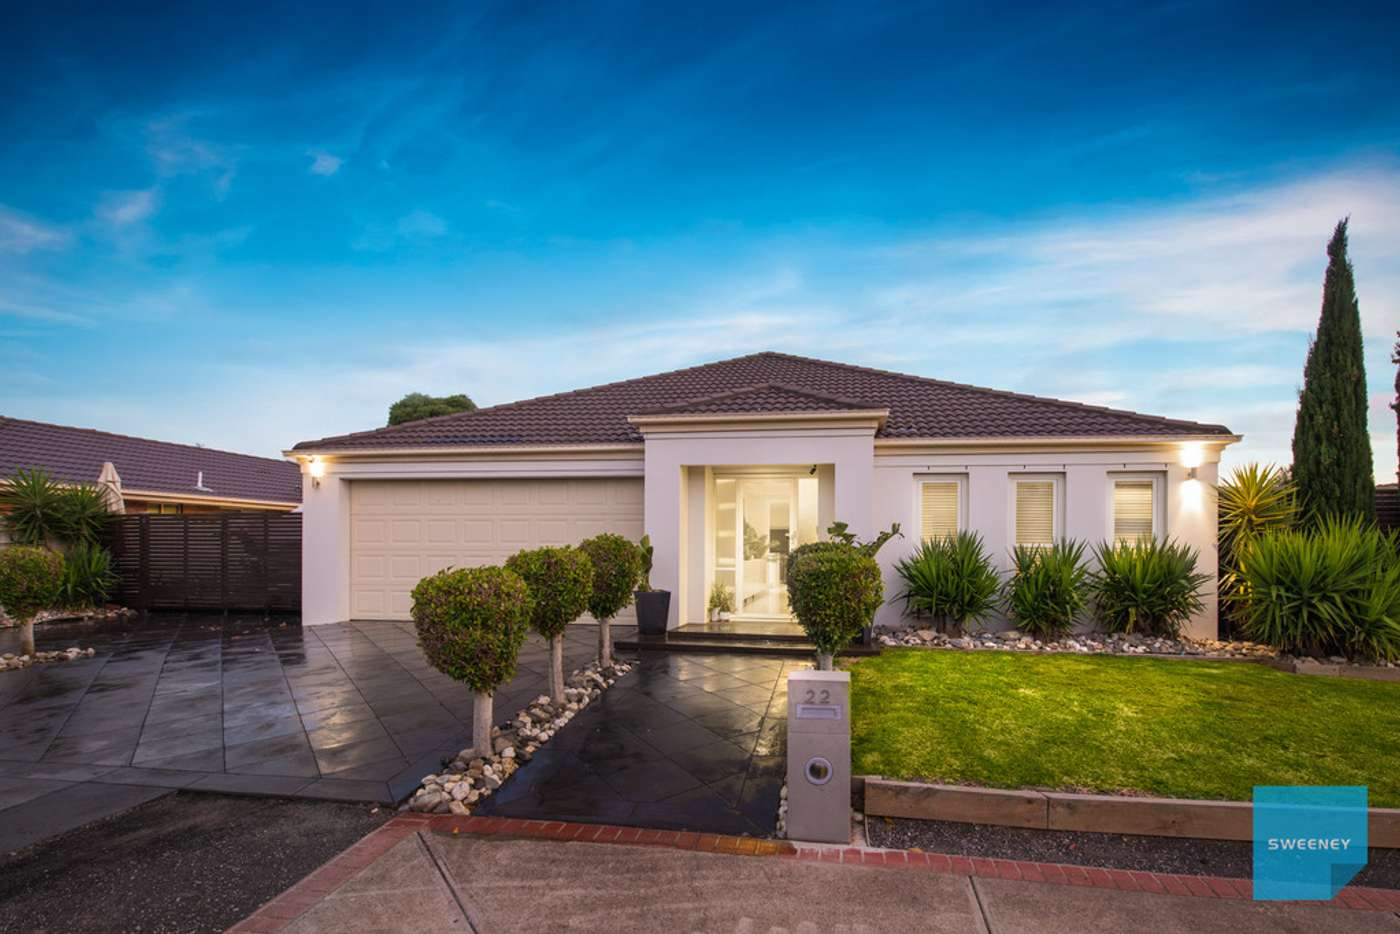 Main view of Homely house listing, 22 Netherton Place, Caroline Springs VIC 3023